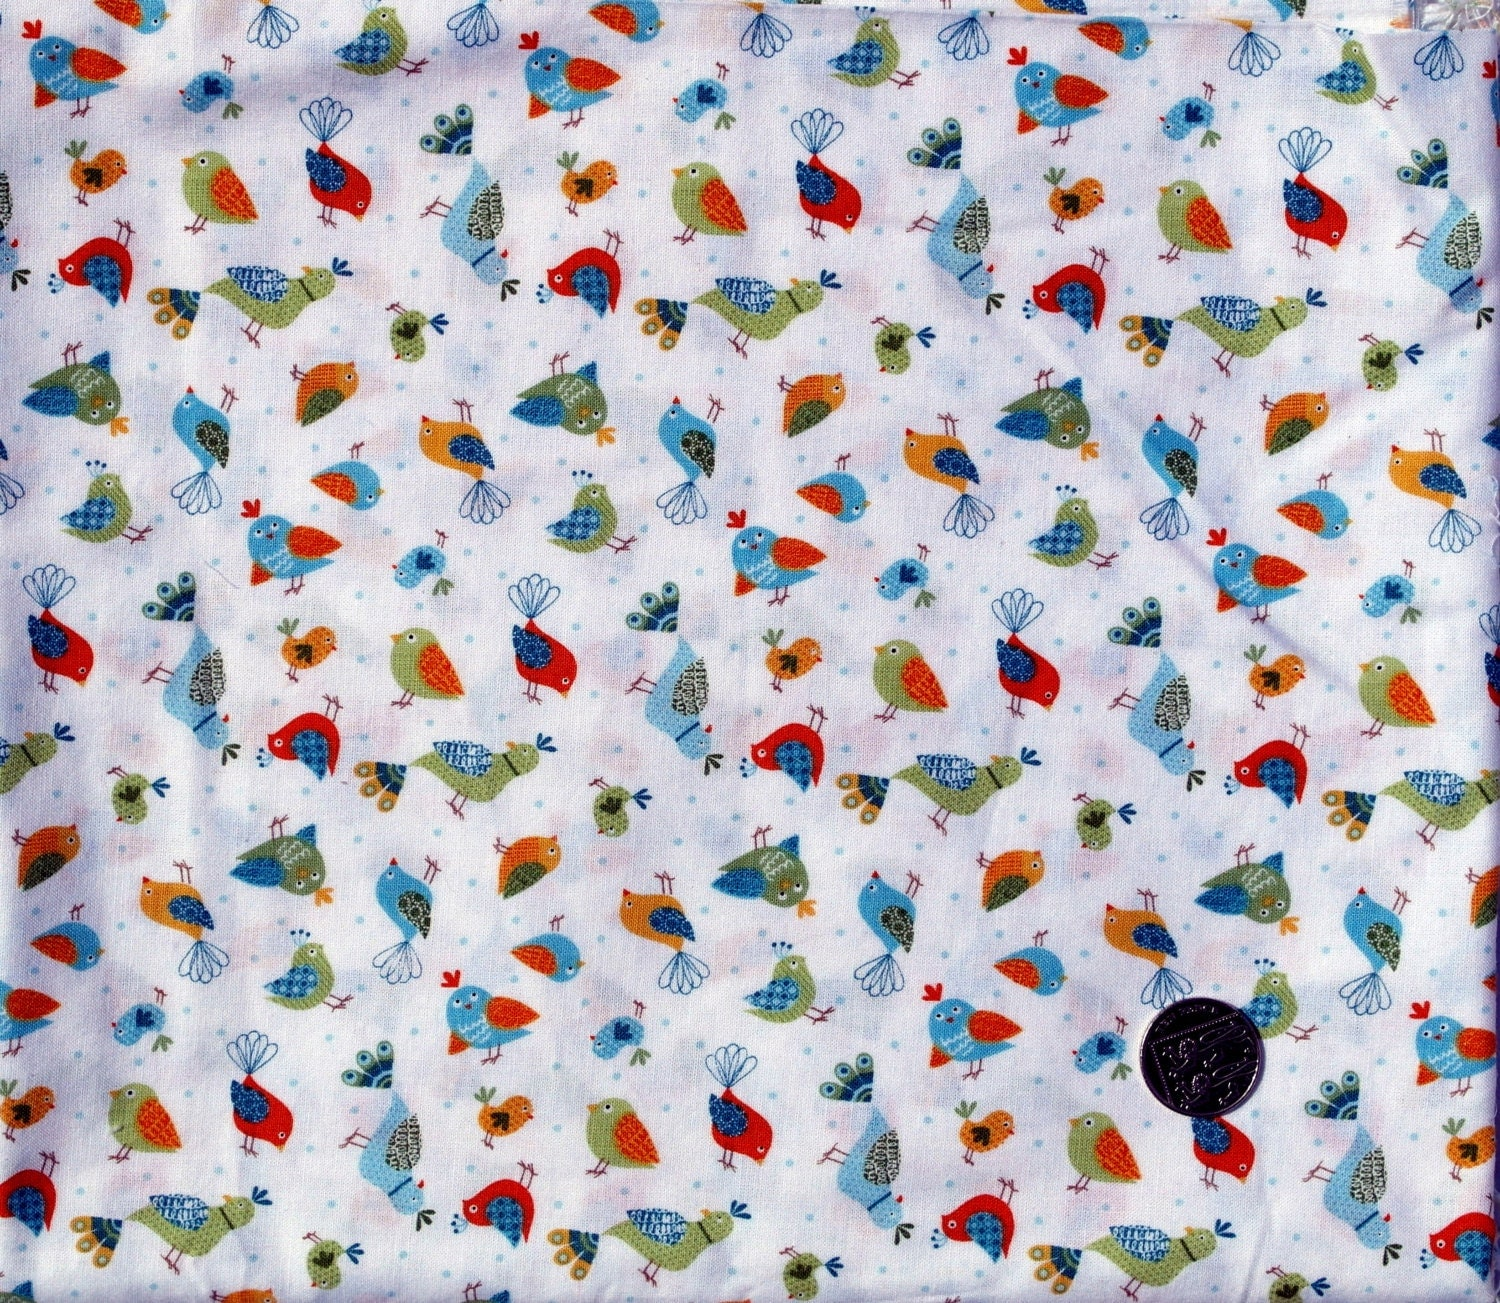 Fabric children 39 s novelty fabric birds on a by thequiltingbird for Kids novelty fabric